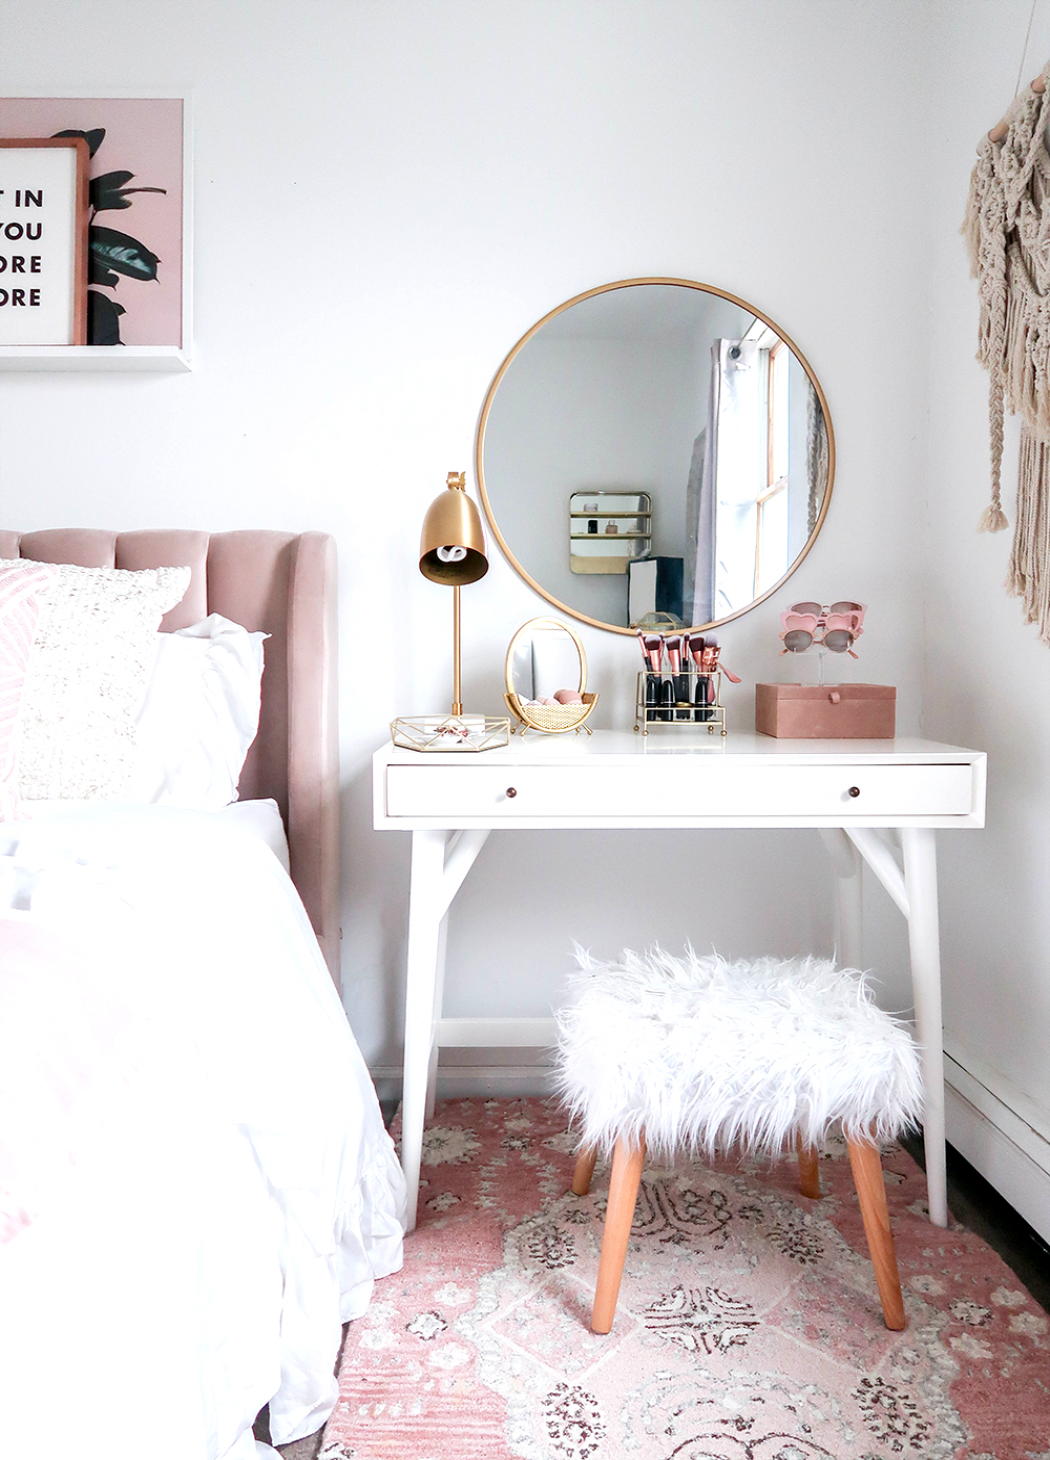 Styling A Vanity In A Small Space -   18 room decor Small bedroom ideas